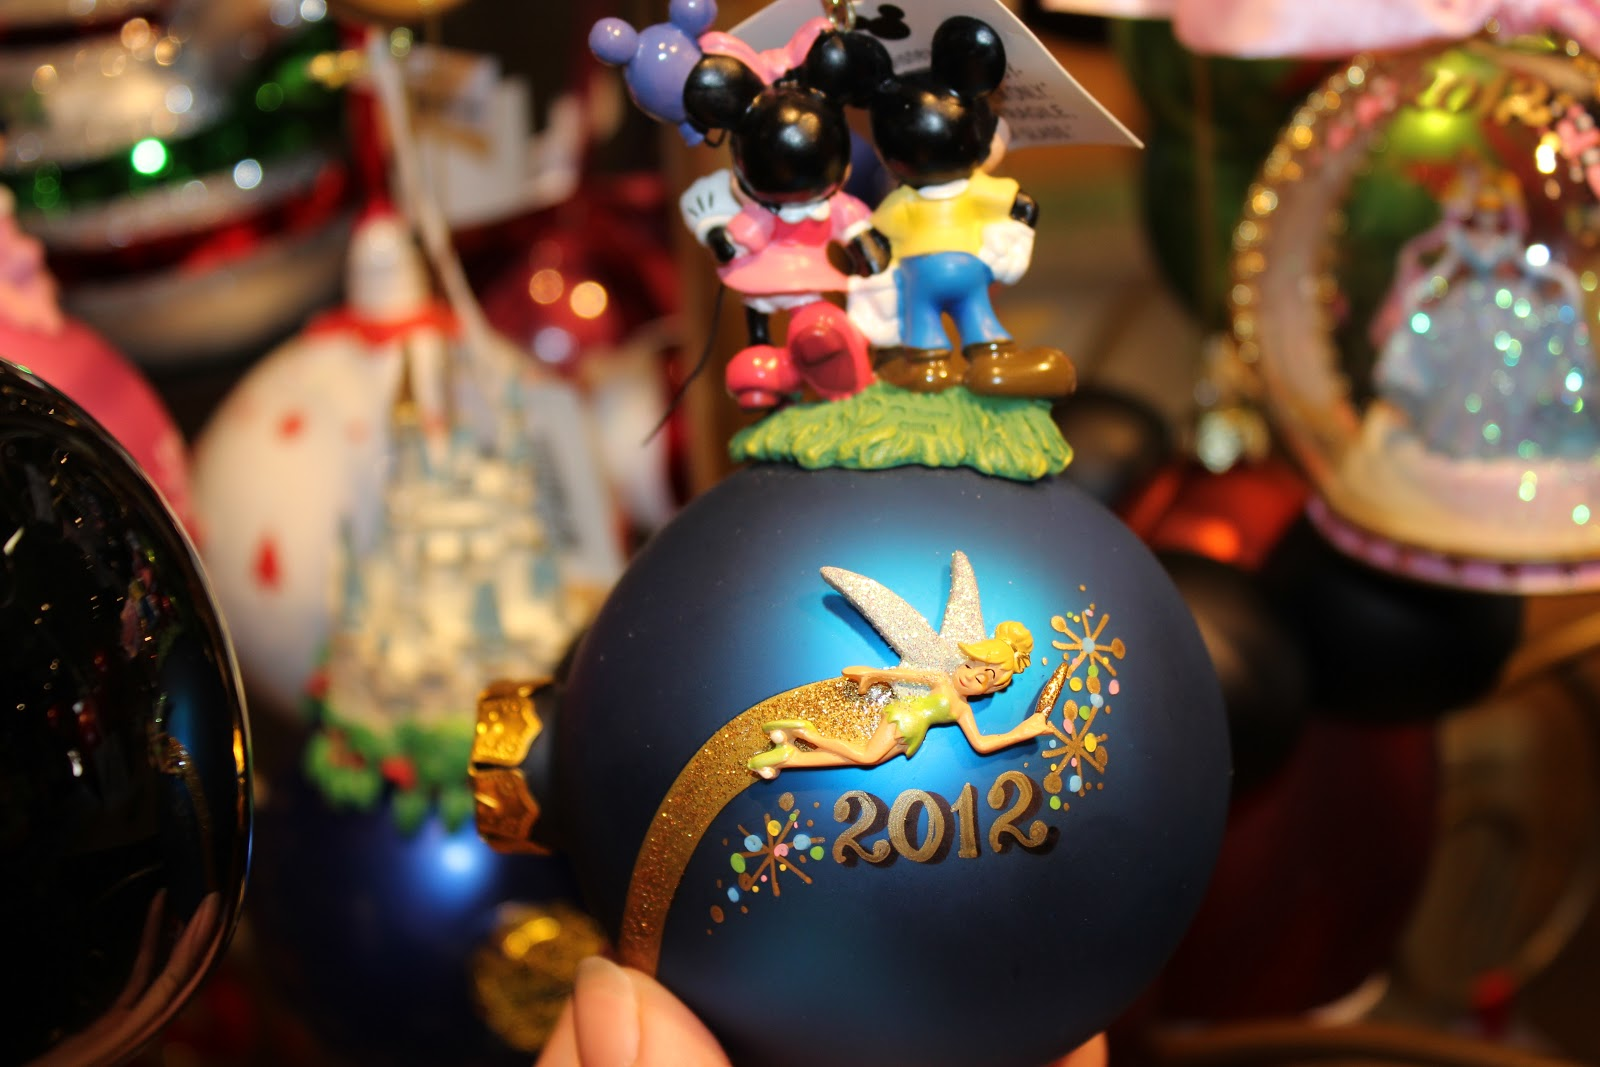 Personalizable ornaments - Here Are Some Samples Of Personalized Christmas Ornaments